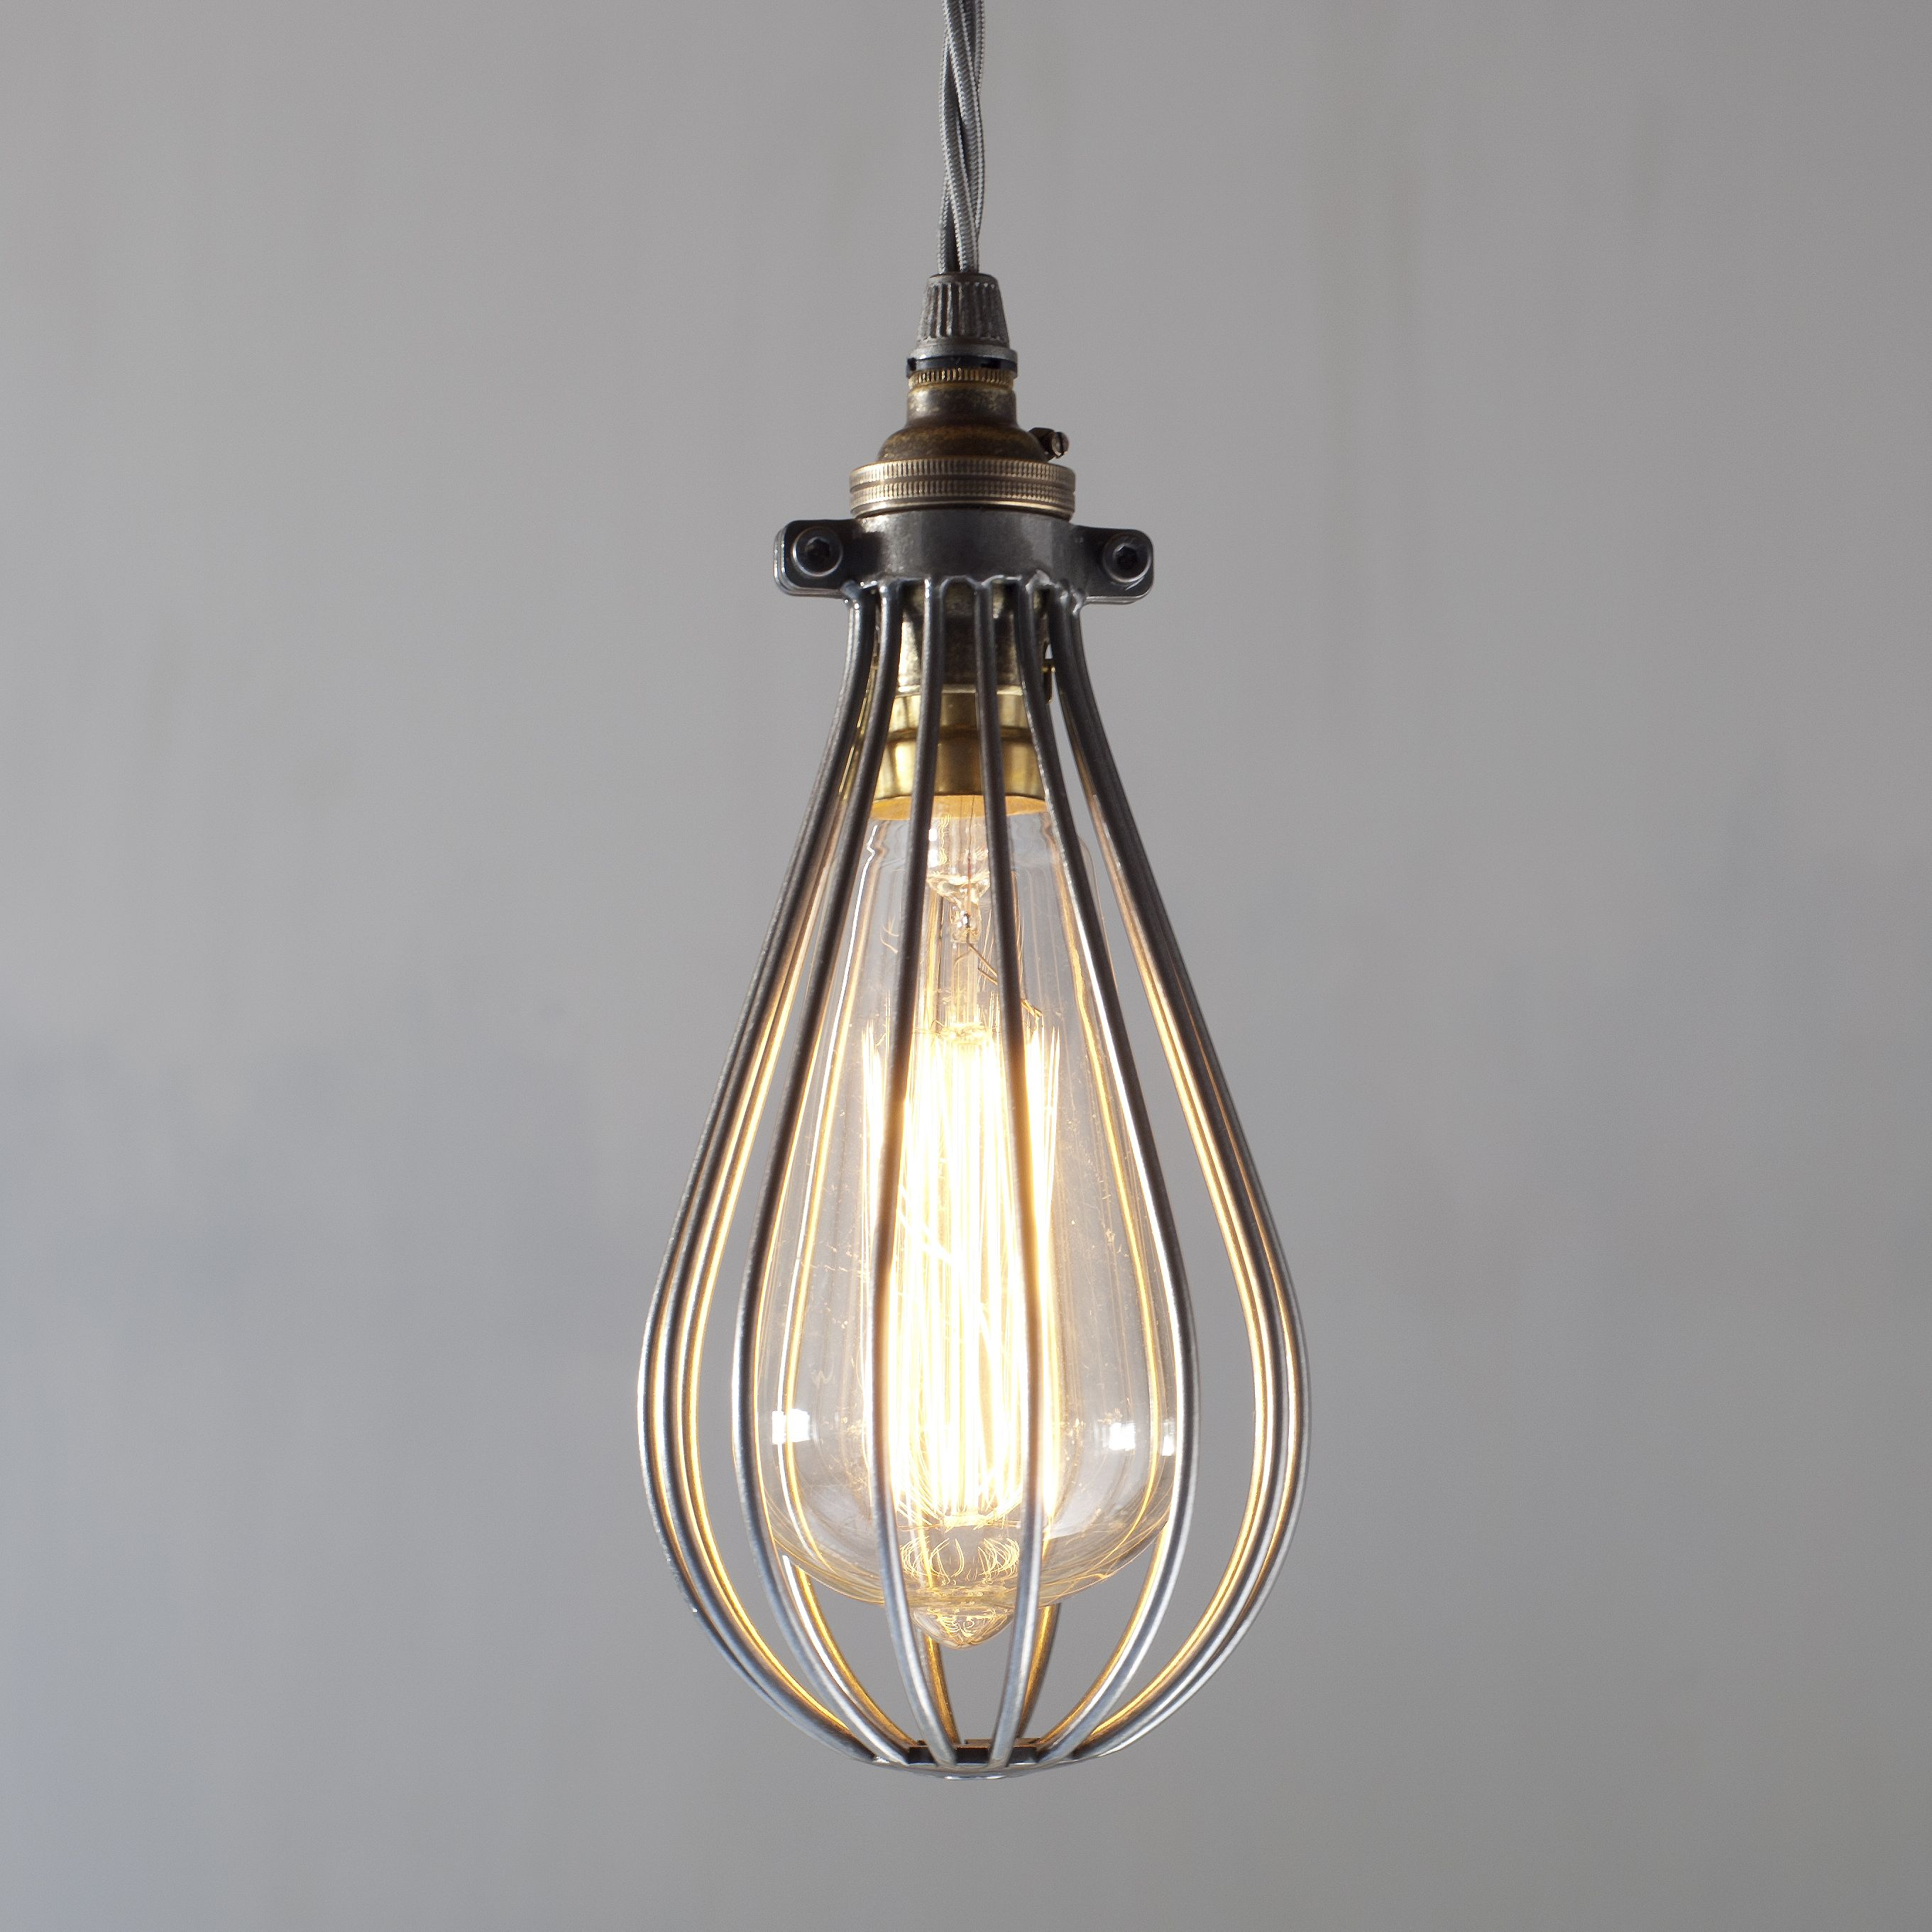 chic hanging lighting ideas lamp. The *NEW For Cowley Pendant Light In Polished. We Love Vintage Industial Chic Of This New Light. Hanging Lighting Ideas Lamp